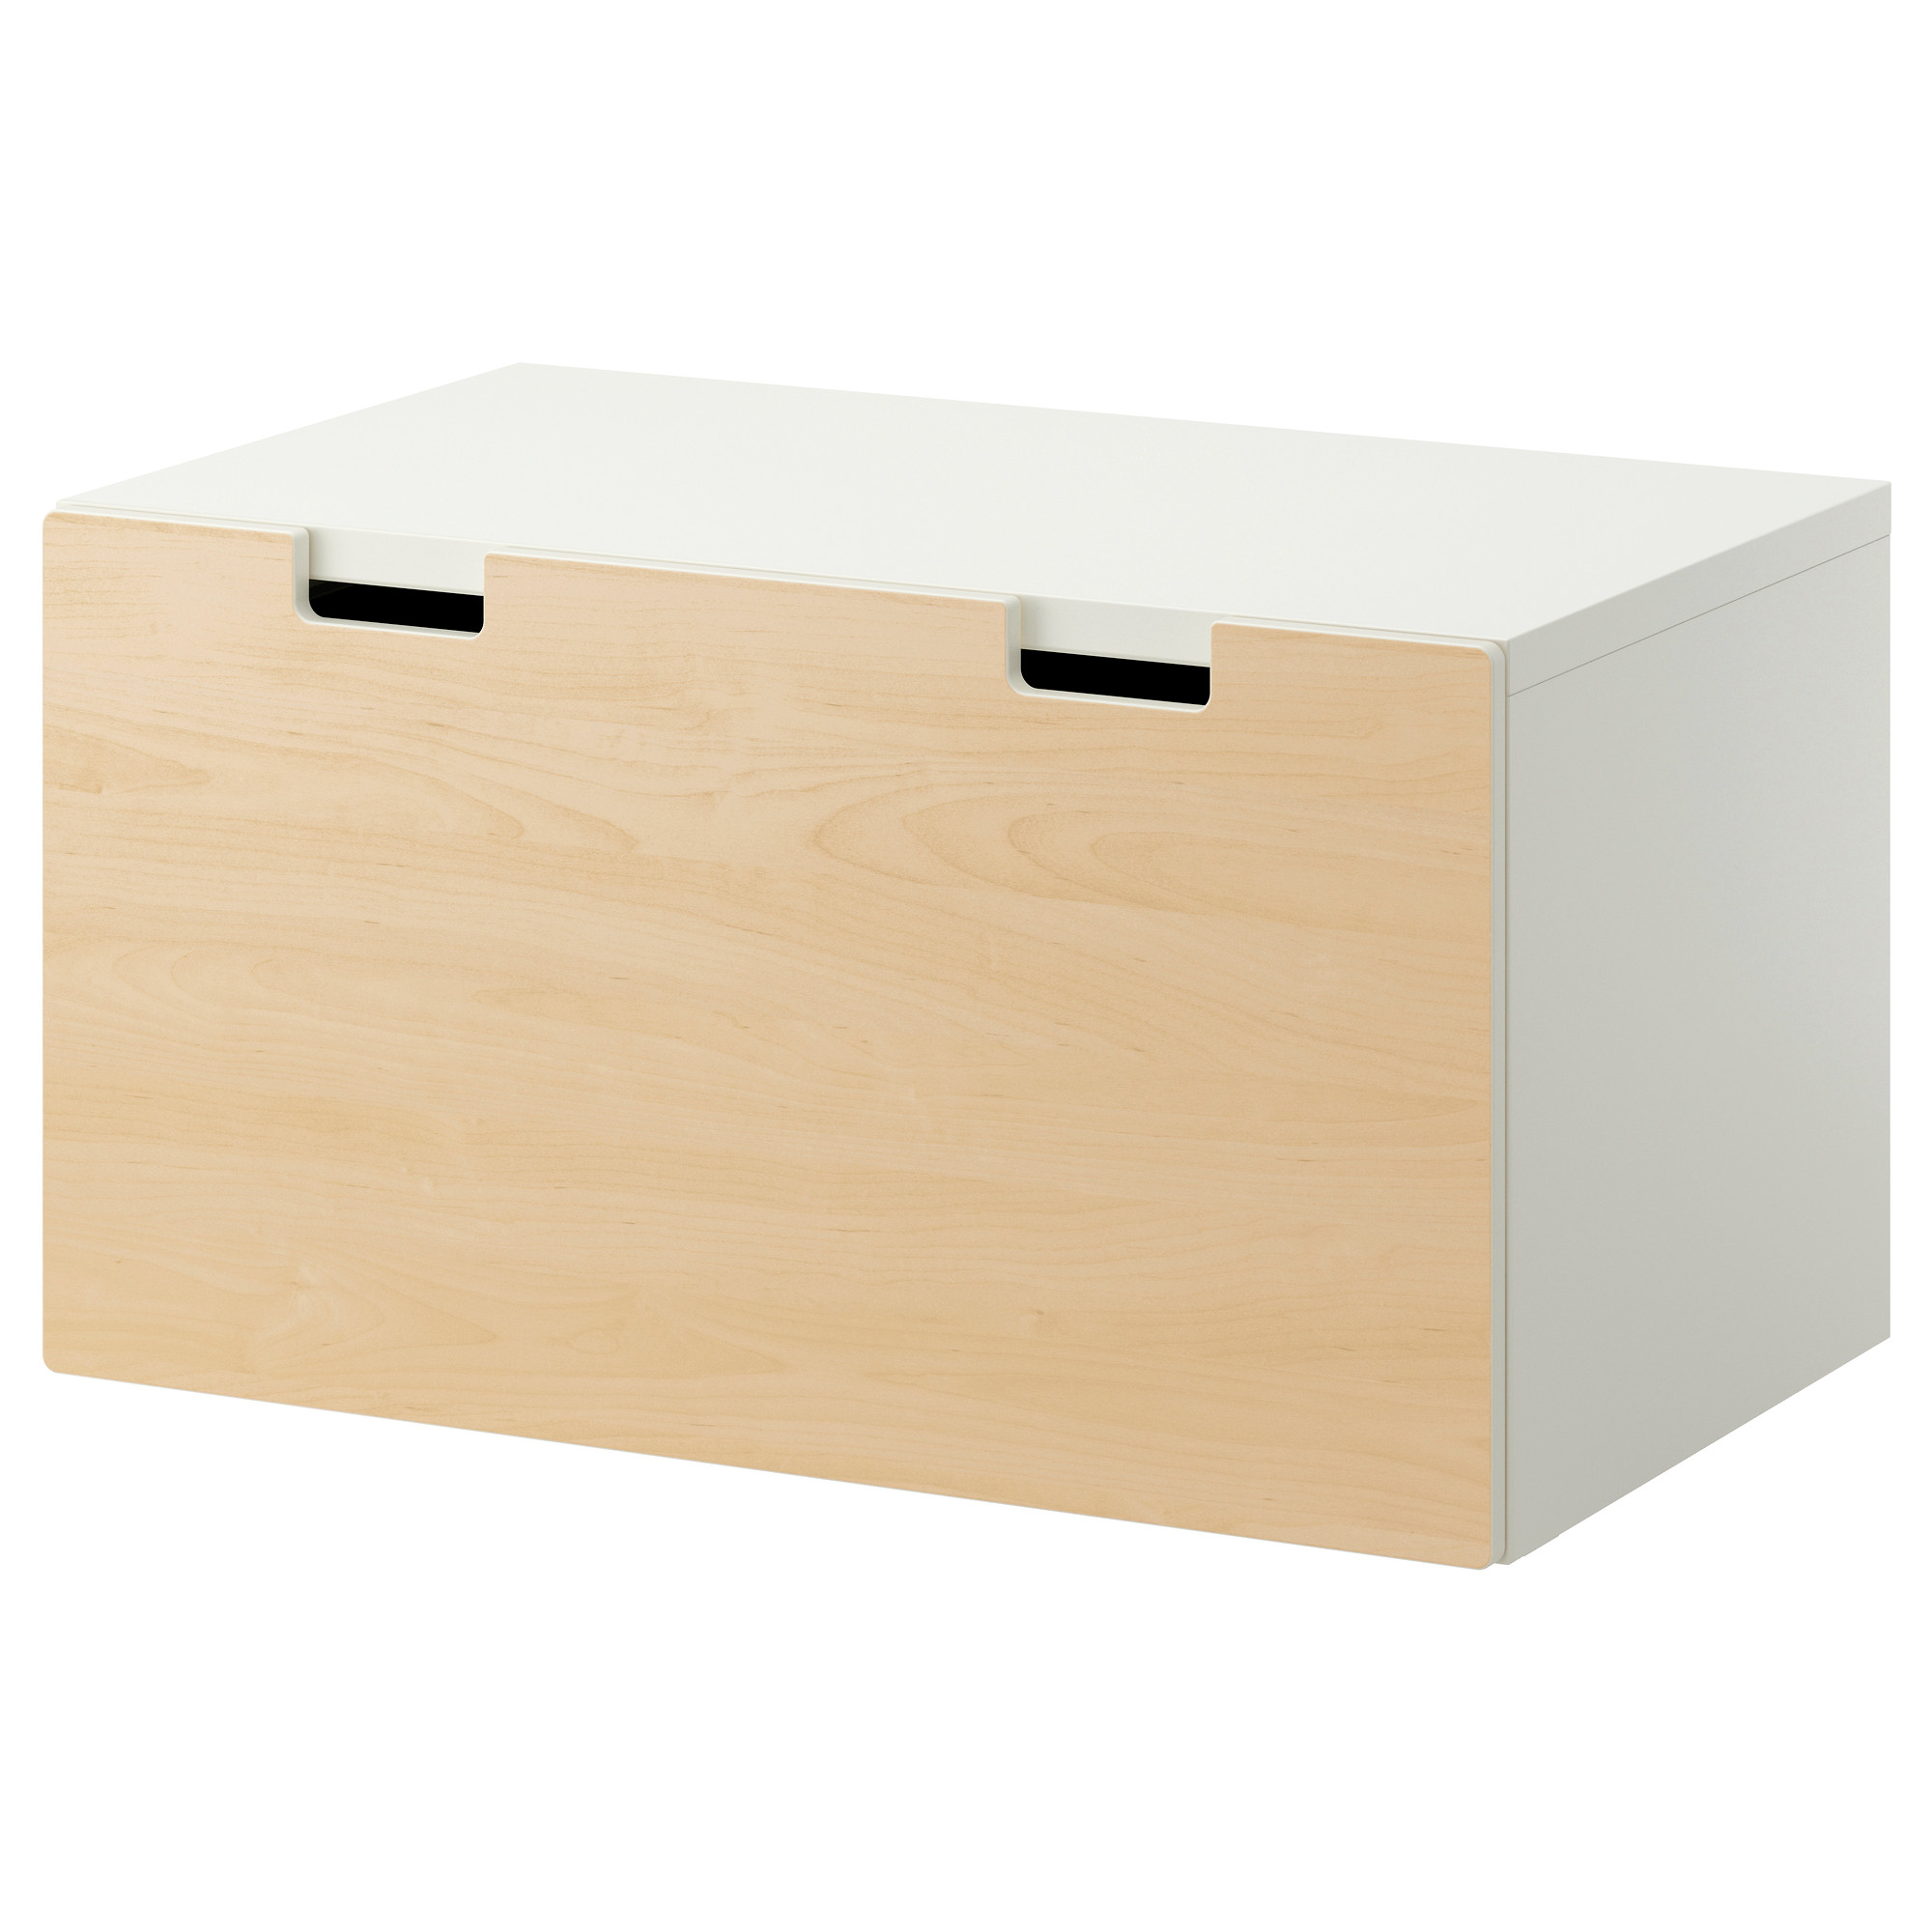 IKEA storage bench also with end of bed storage bench also with corner storage bench also with hallway bench also with entryway bench with shoe storage